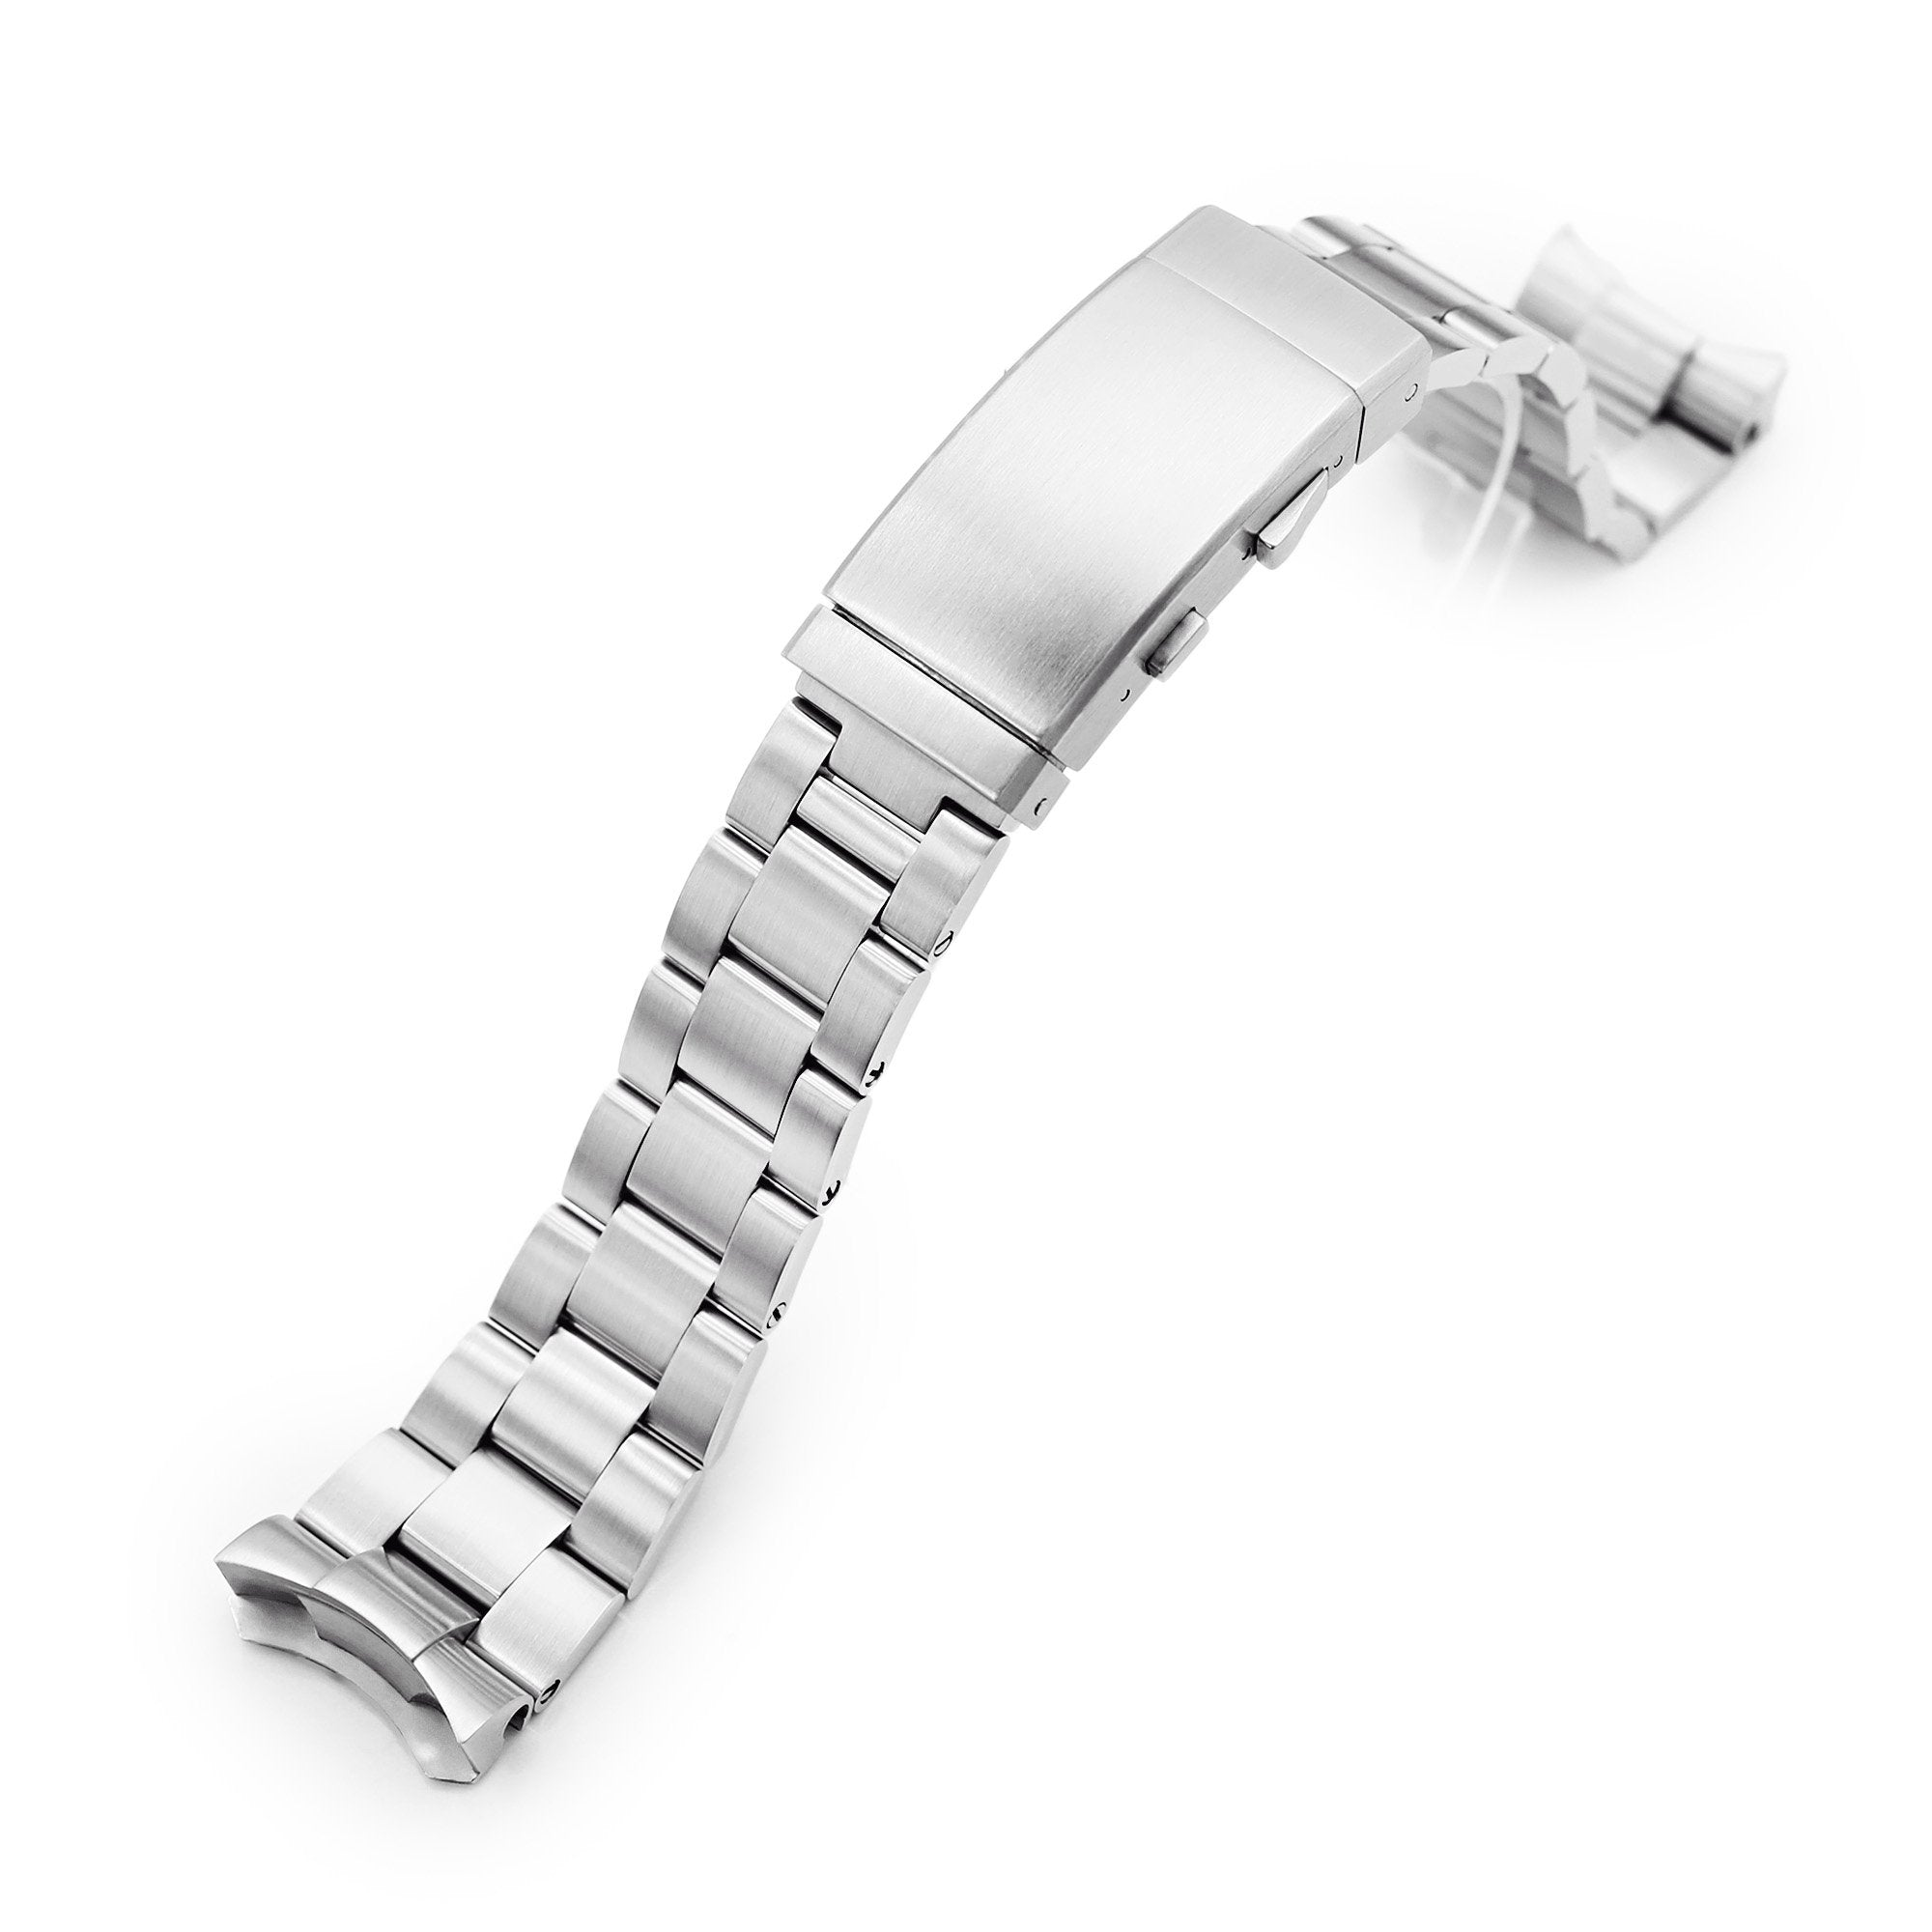 22mm Super-O Boyer 316L Stainless Steel Watch Band for Seiko 5, Brushed Wetsuit Ratchet Buckle Strapcode Watch Bands